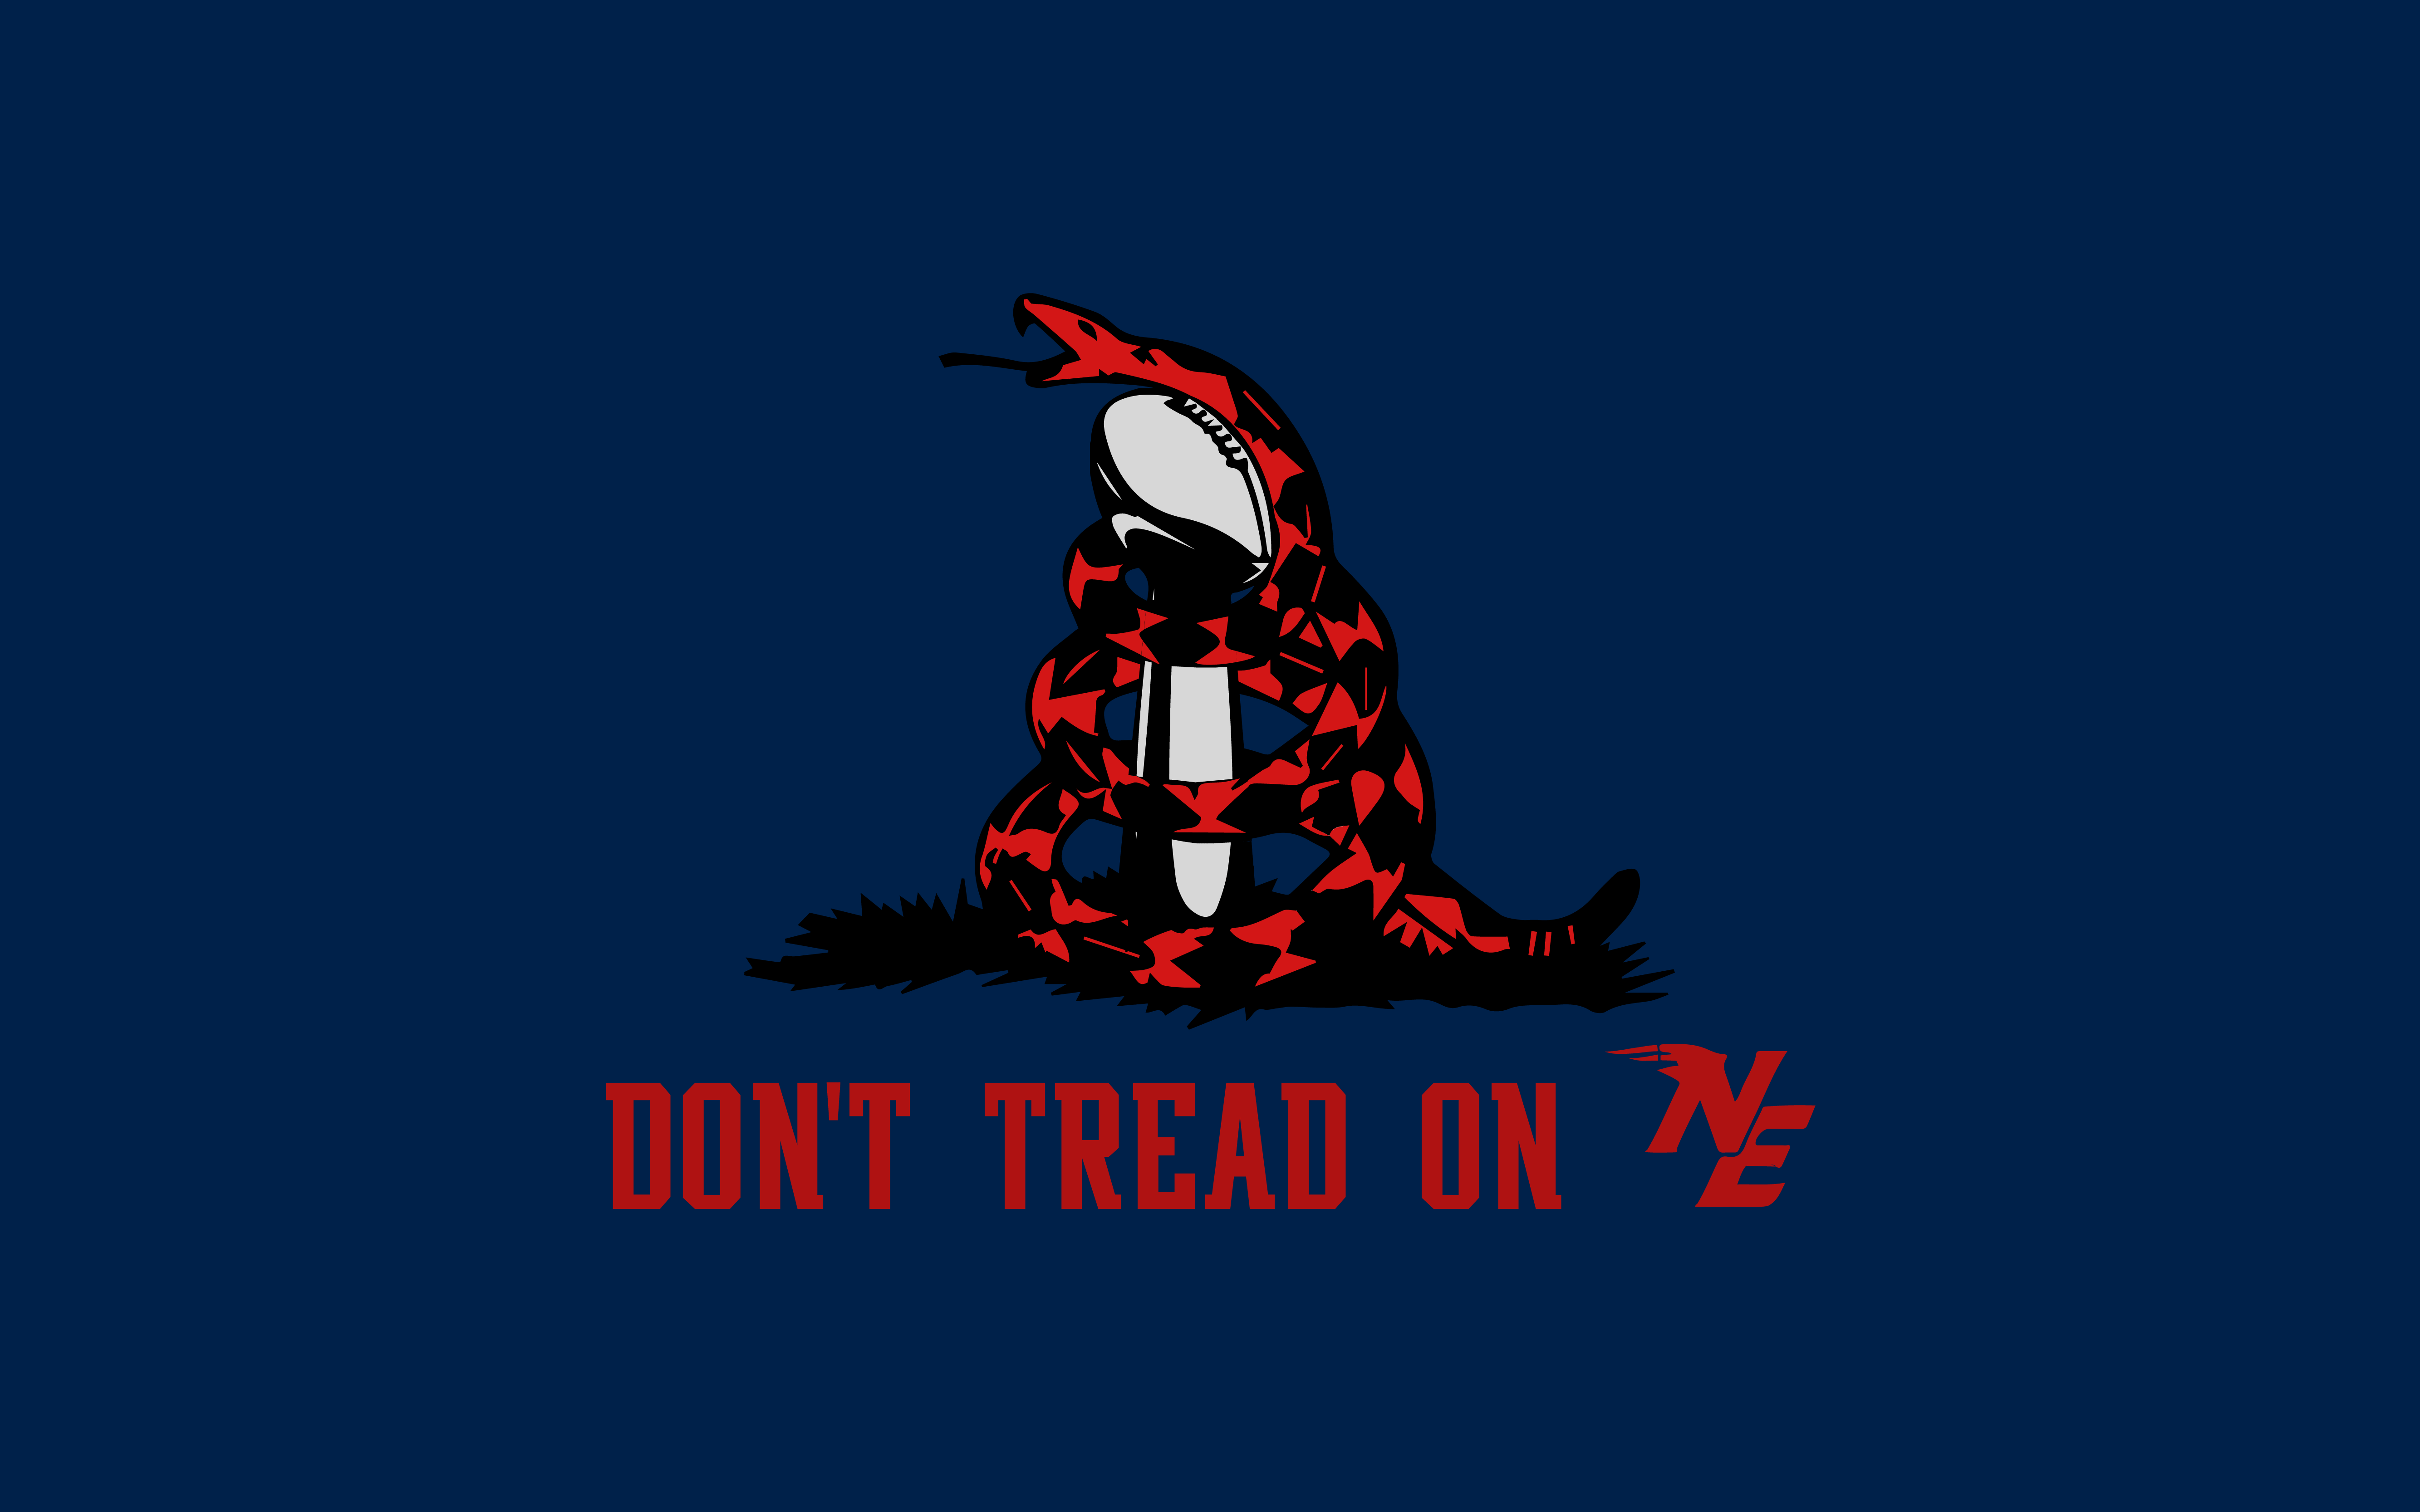 Don't Tread On Me Wallpapers - Wallpaper Cave